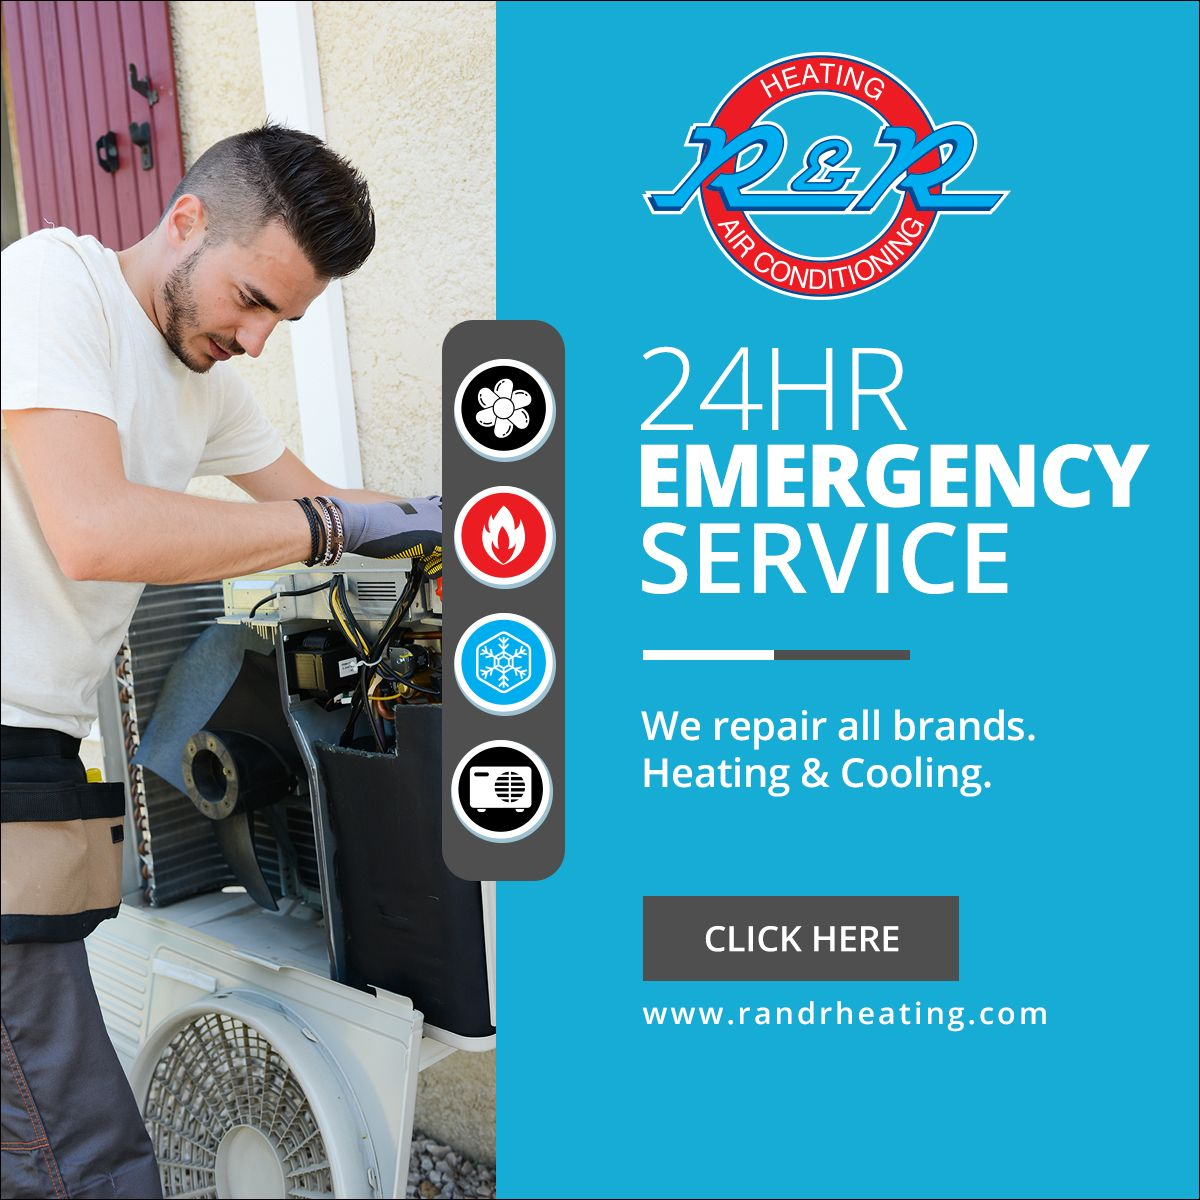 24hr Emergency Service Heating & Air Conditioning HVAC